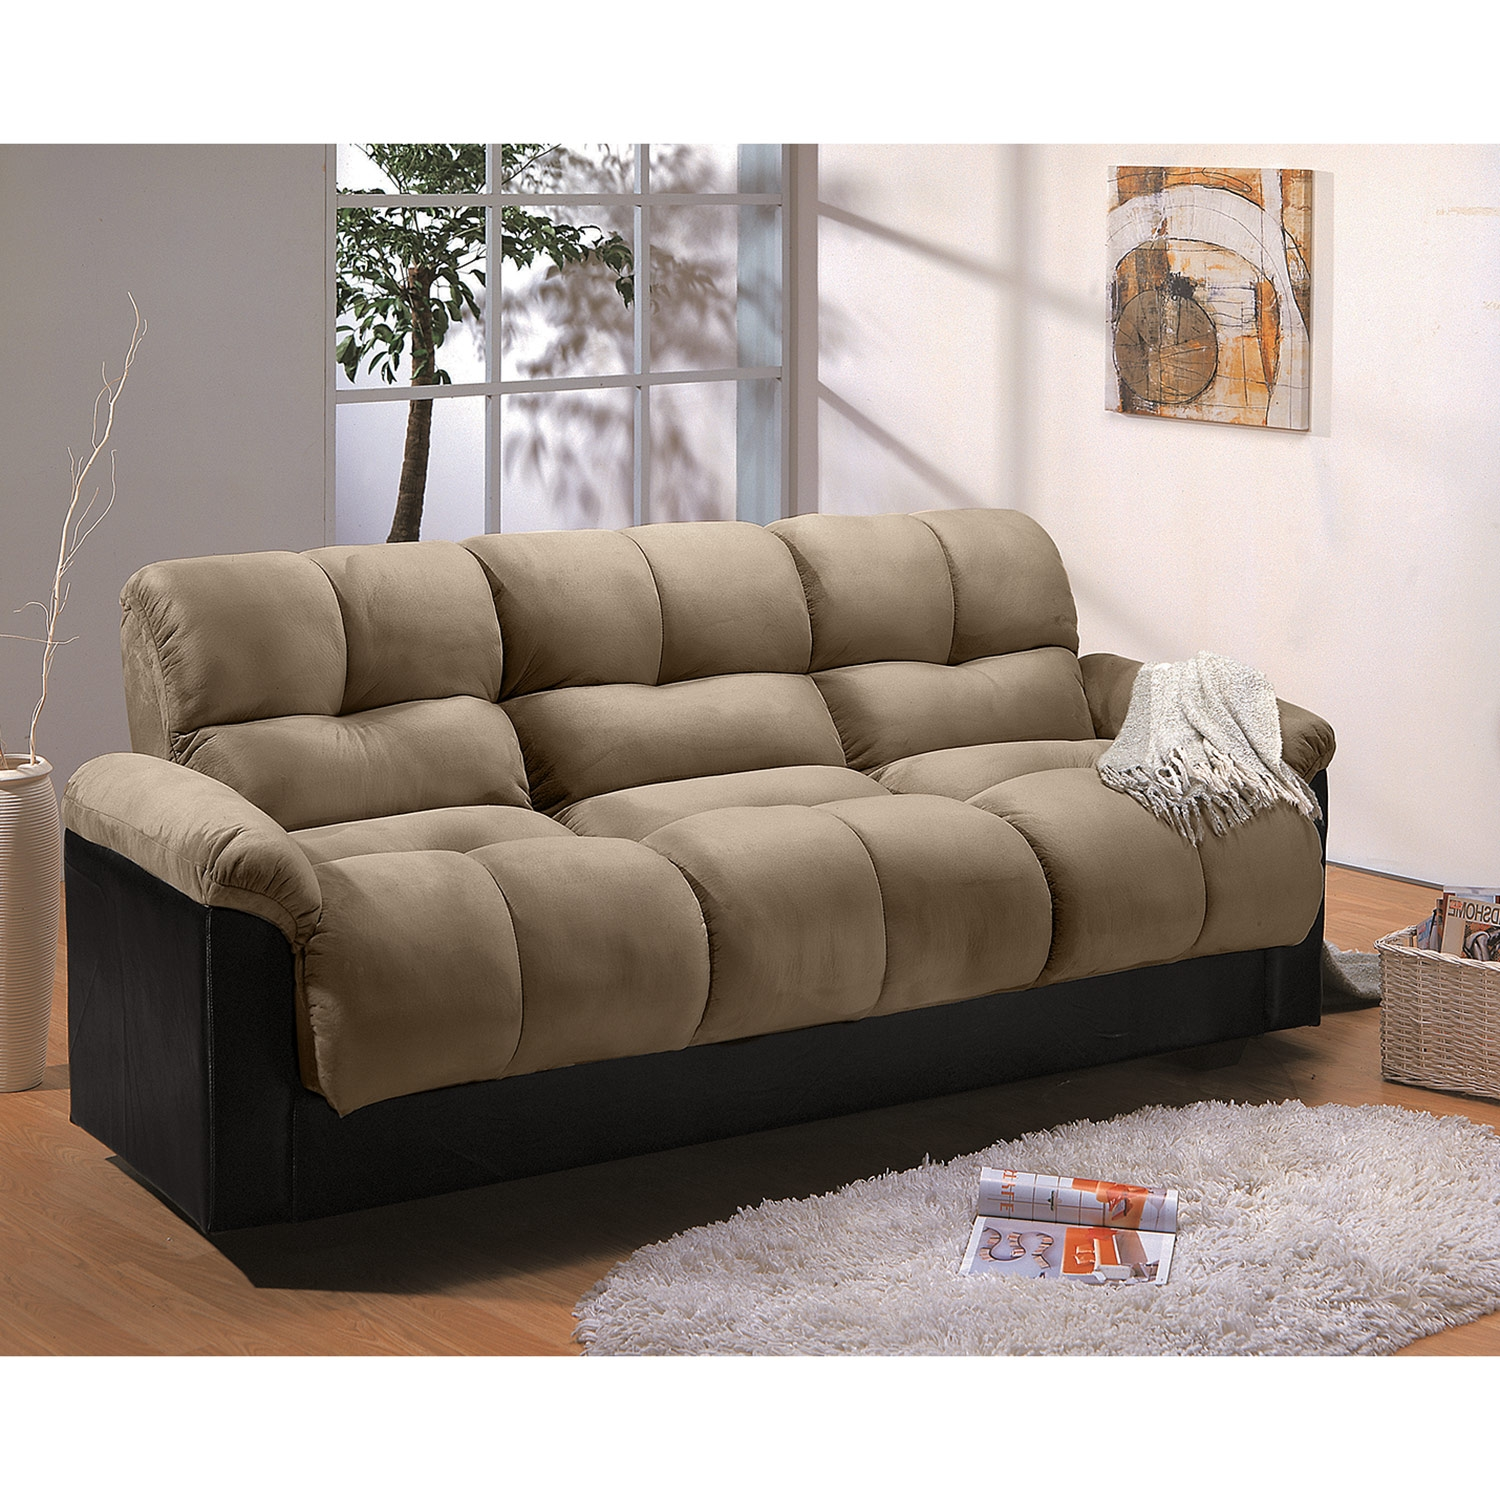 Sofa Futon Beds Ikea